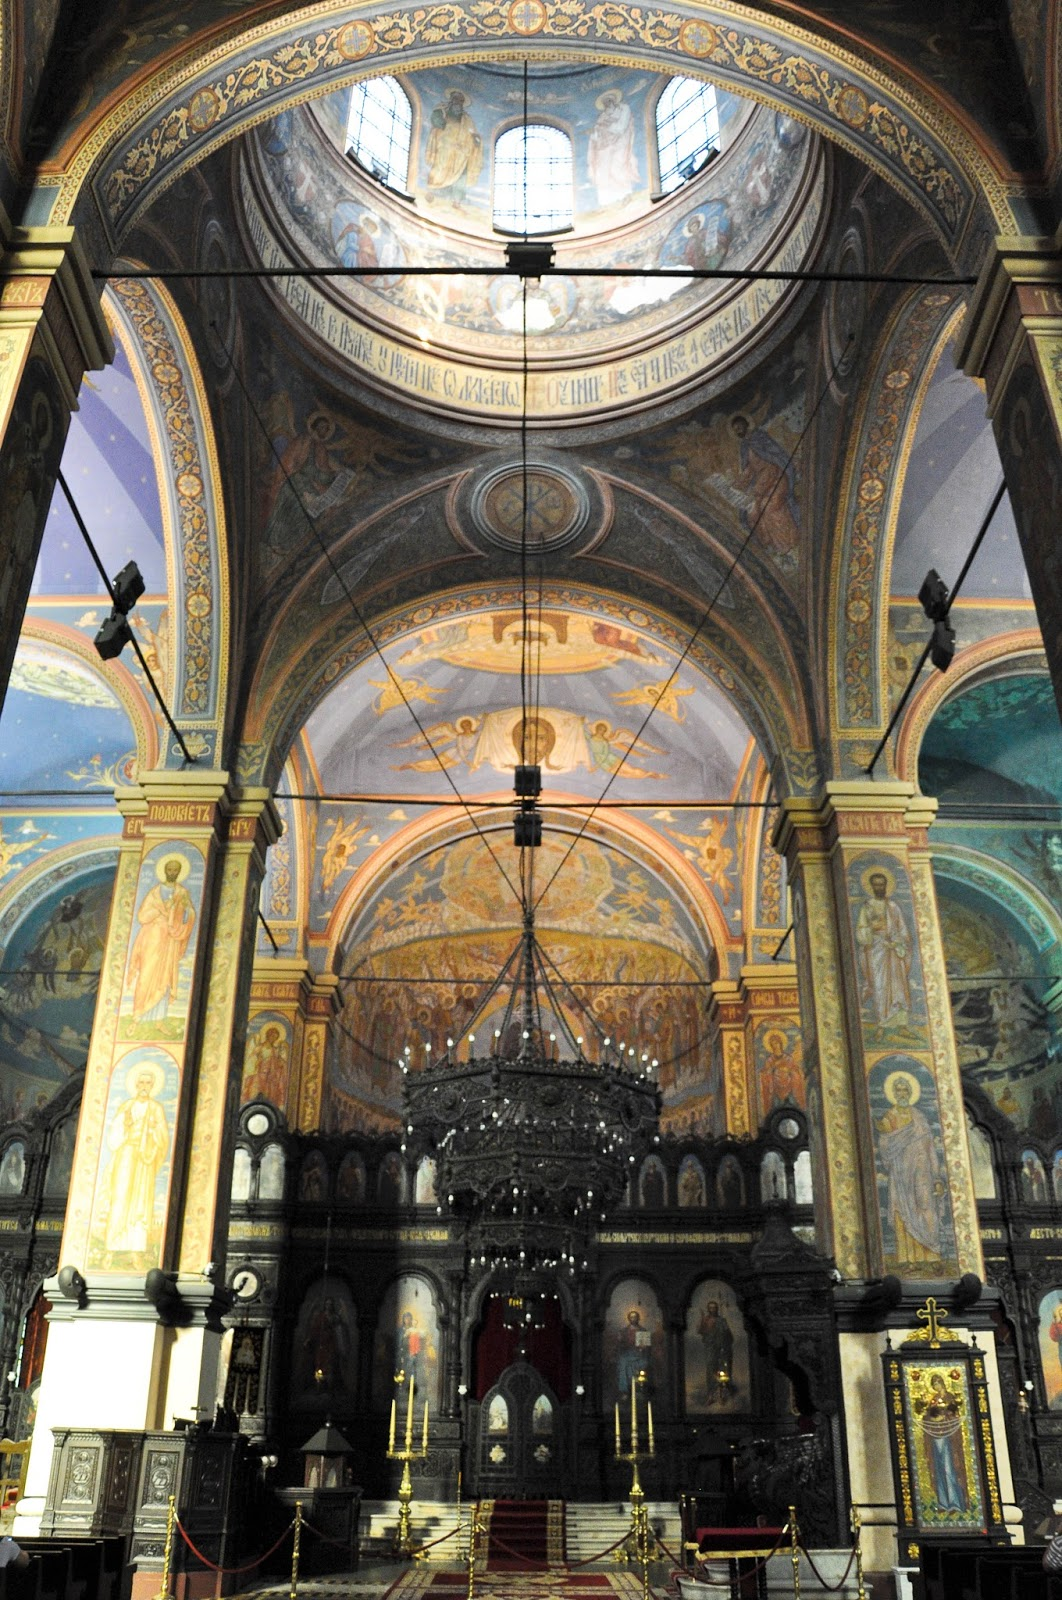 Inside Dormition of the Mother of God Cathedral, Varna